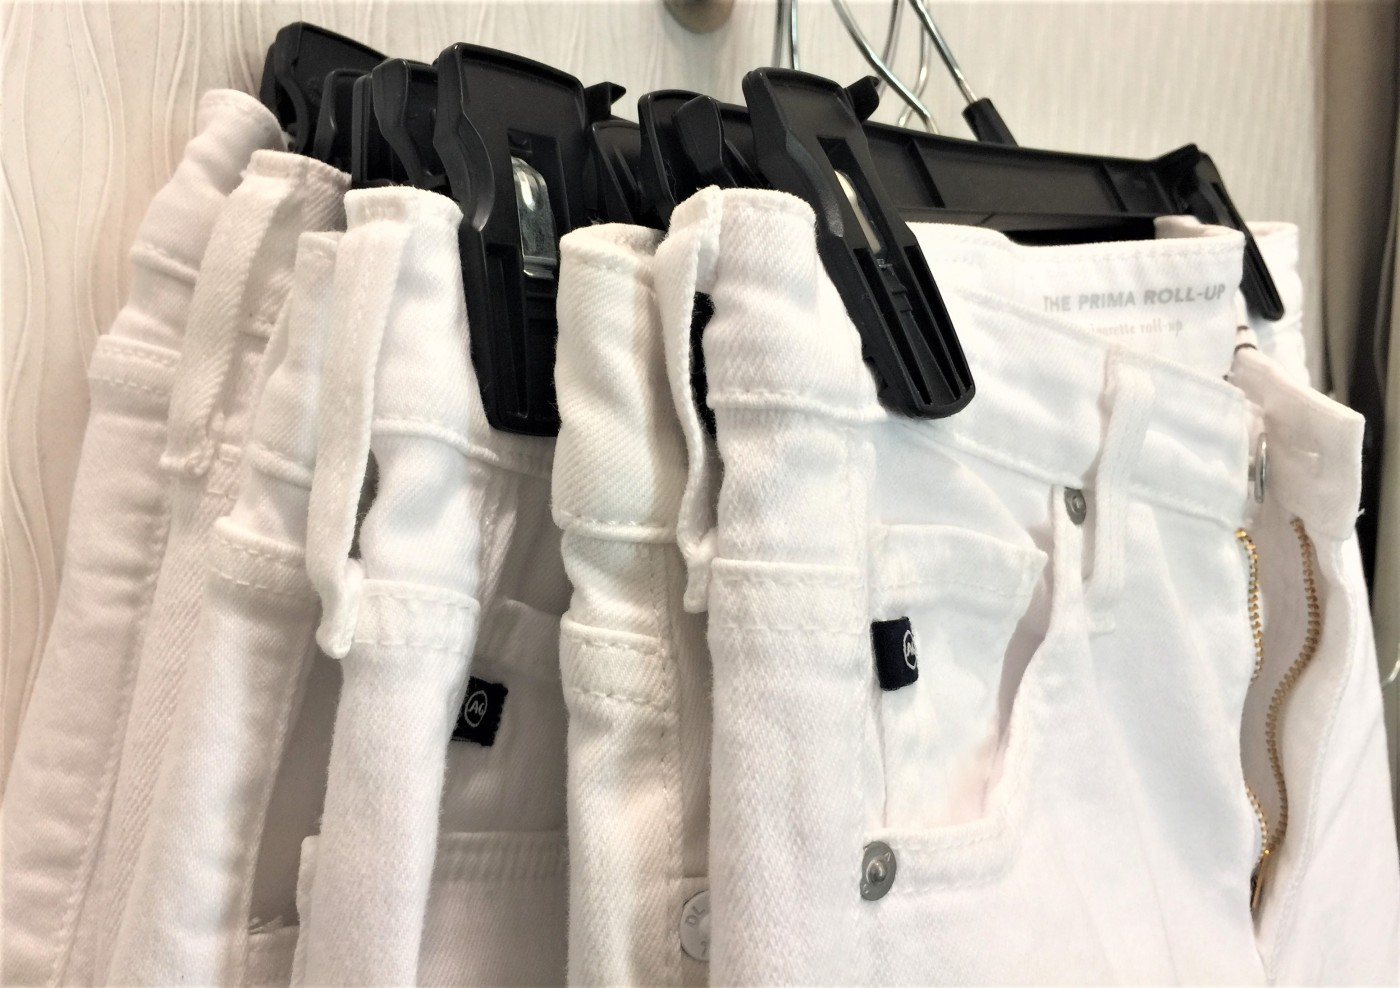 Quest for white jeans